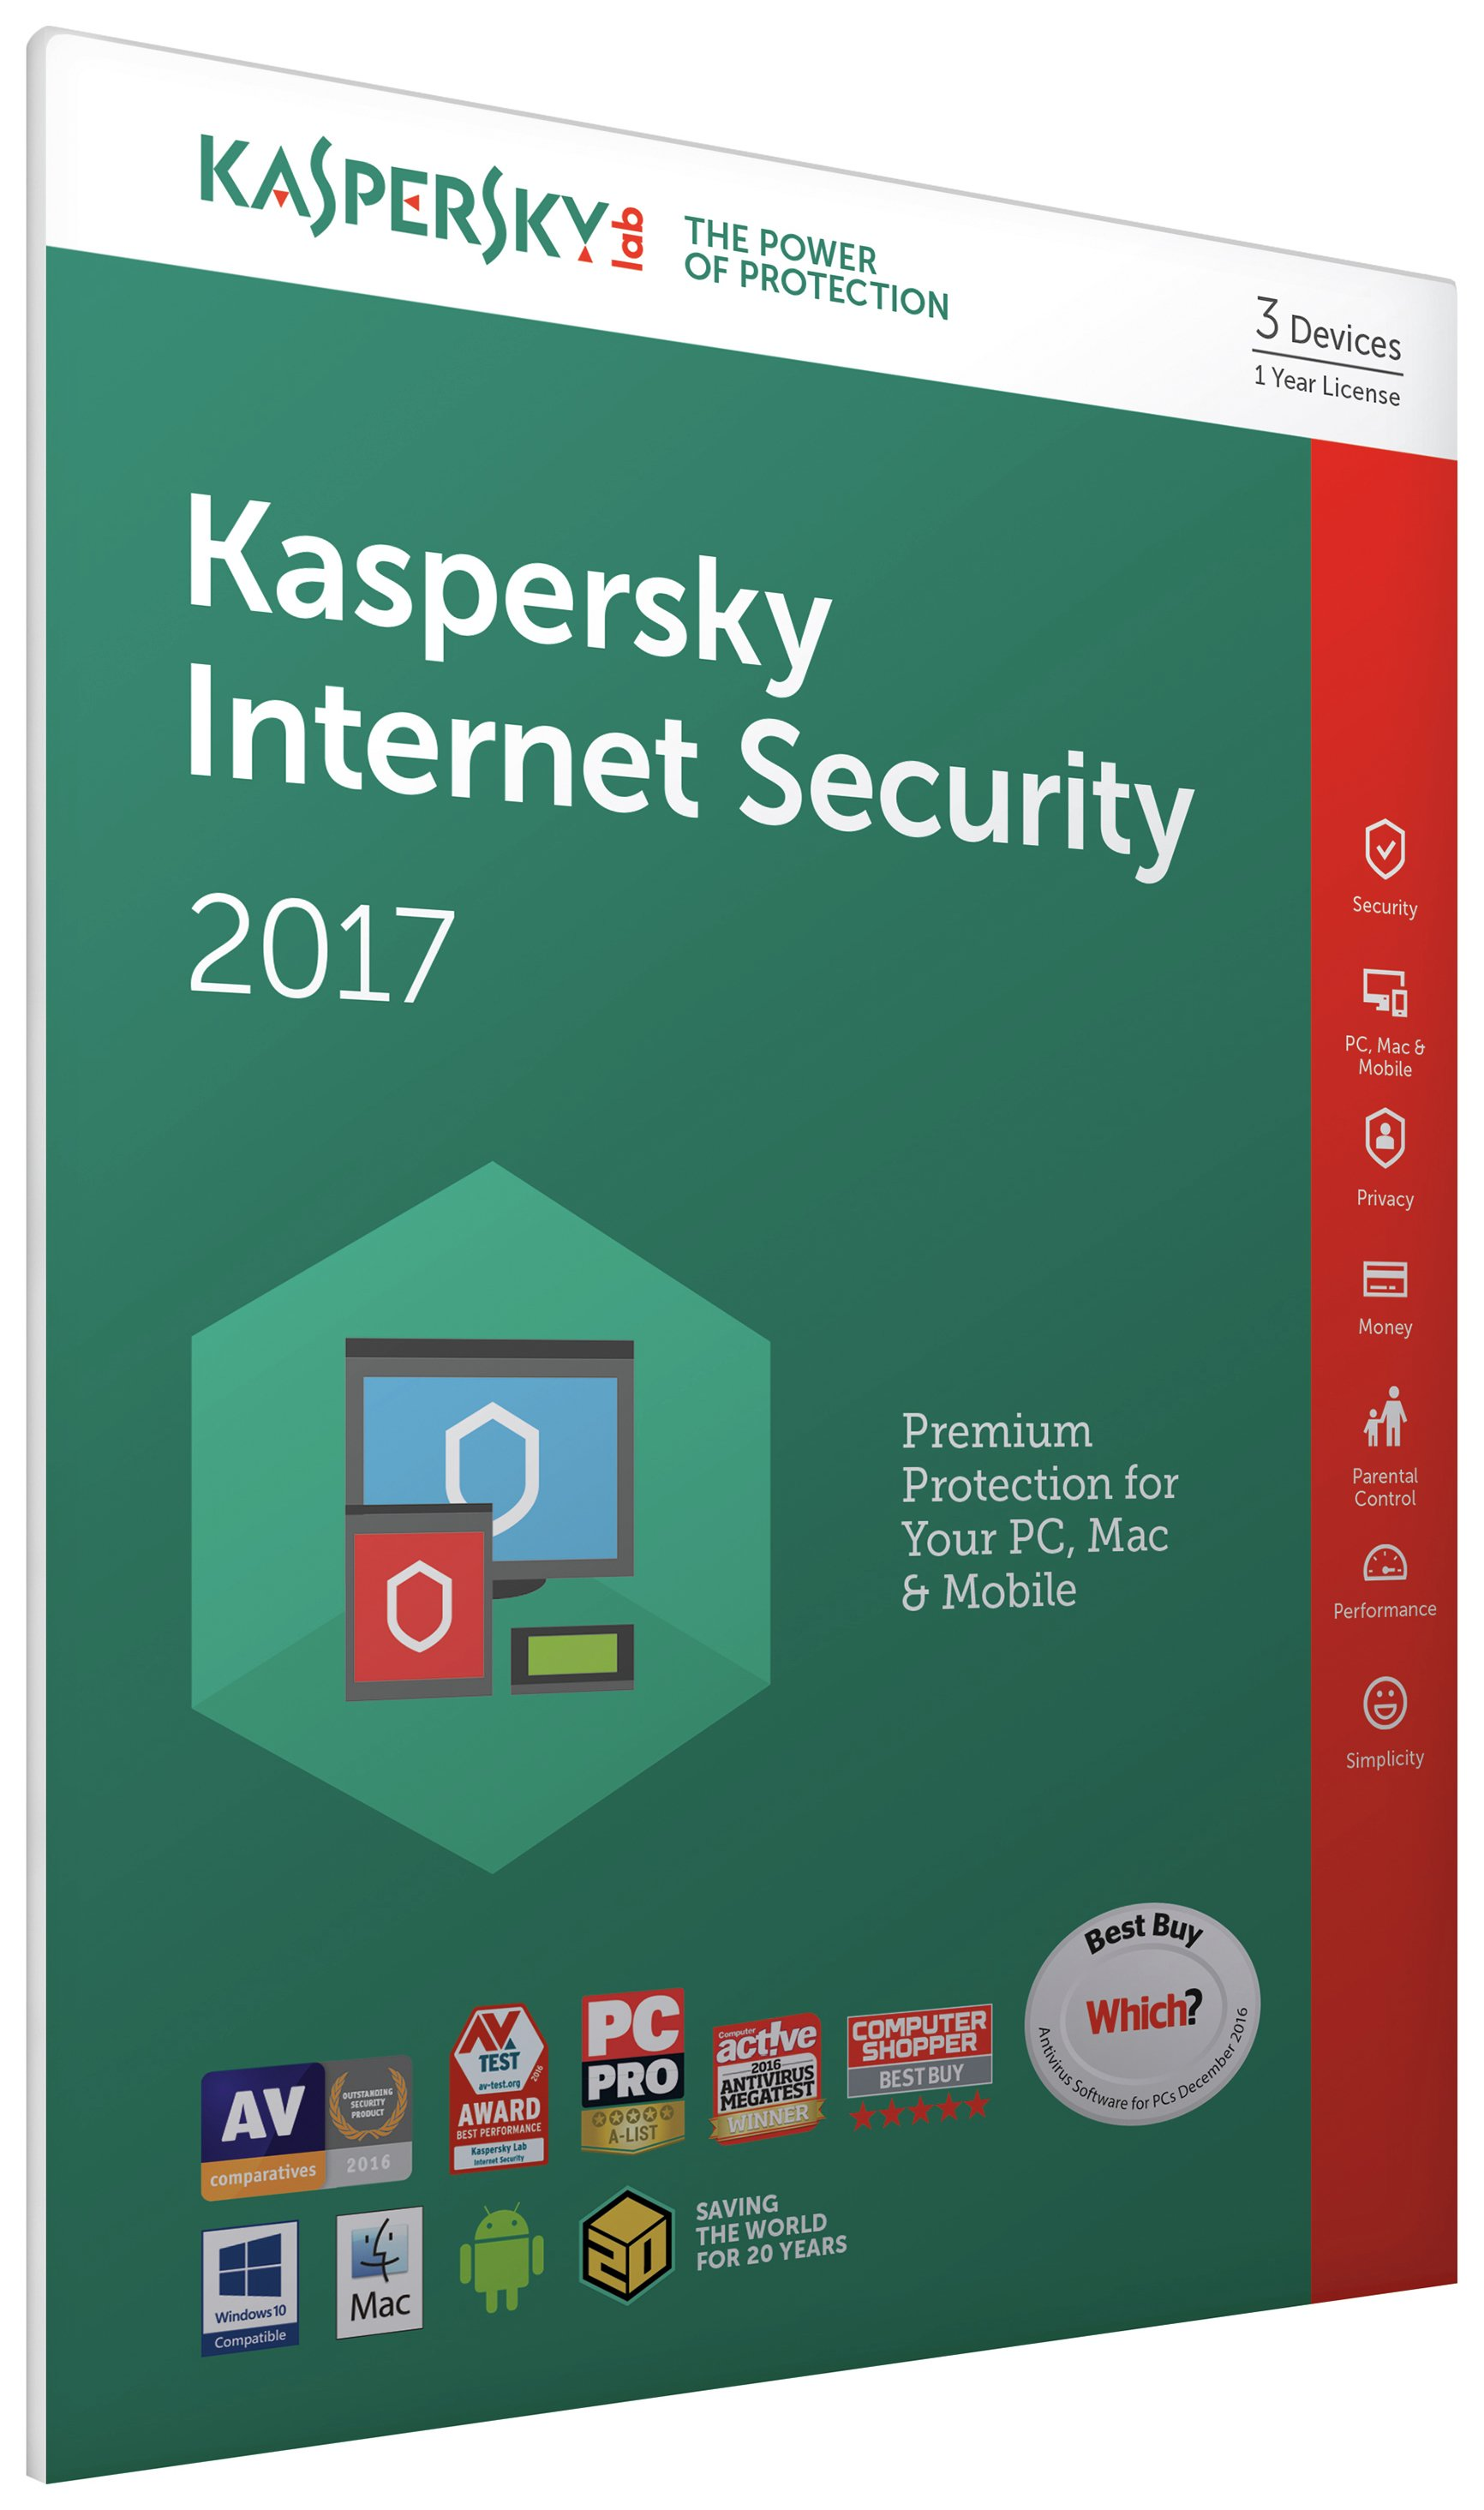 Kaspersky Kaspersky - Internet Security 2017 - 3 Devices, 1 Year License